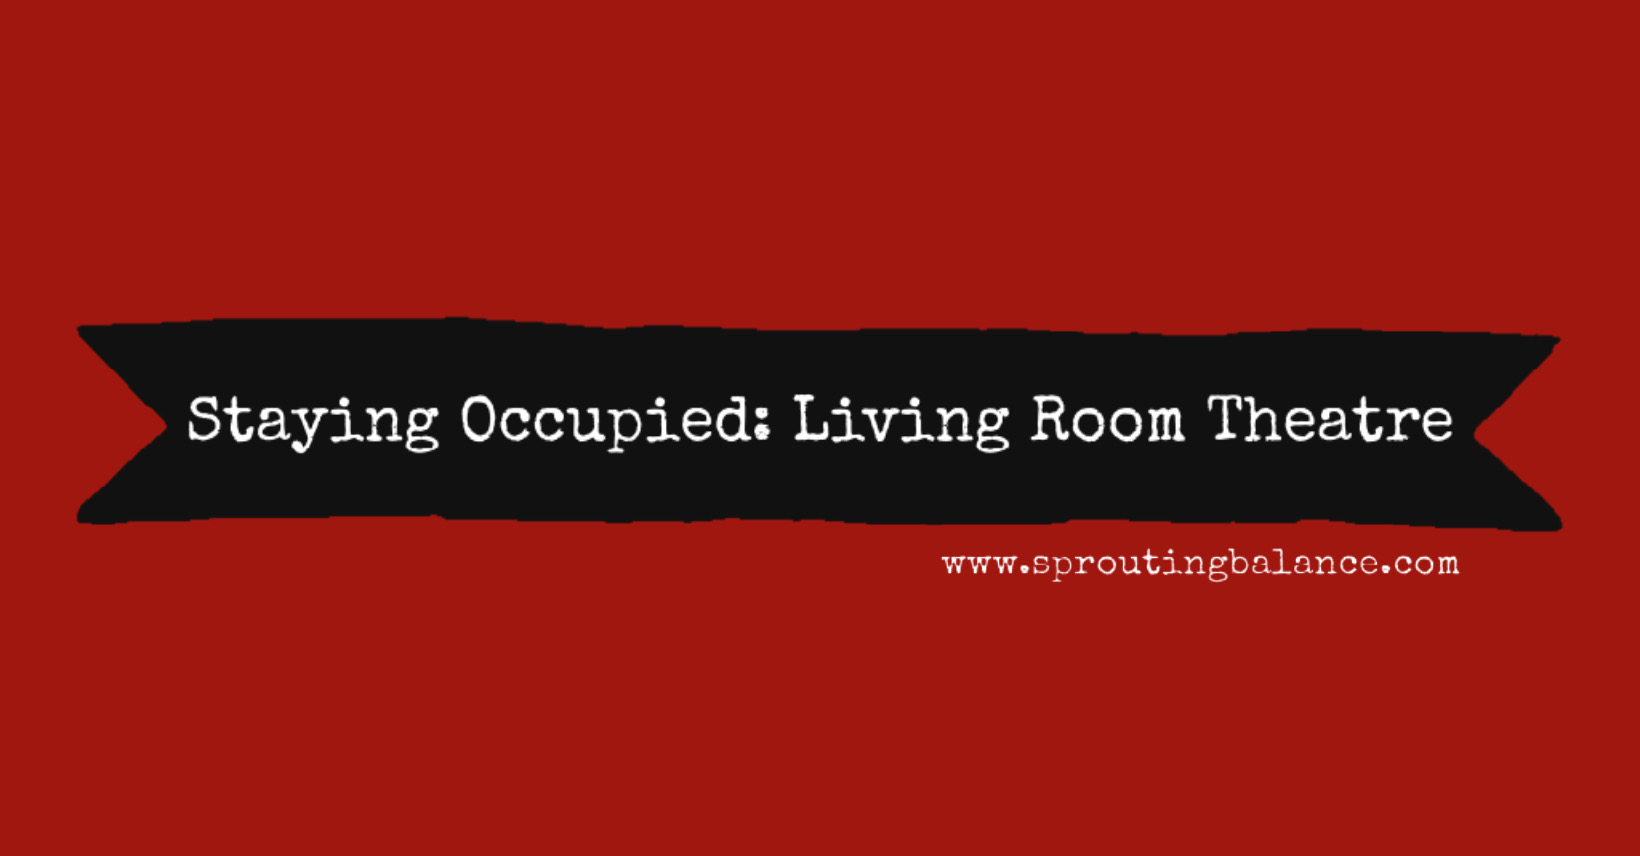 Staying Occupied: Living Room Theatre | www.sproutingbalance.com | #stayhome #socialdistancing #bepositive